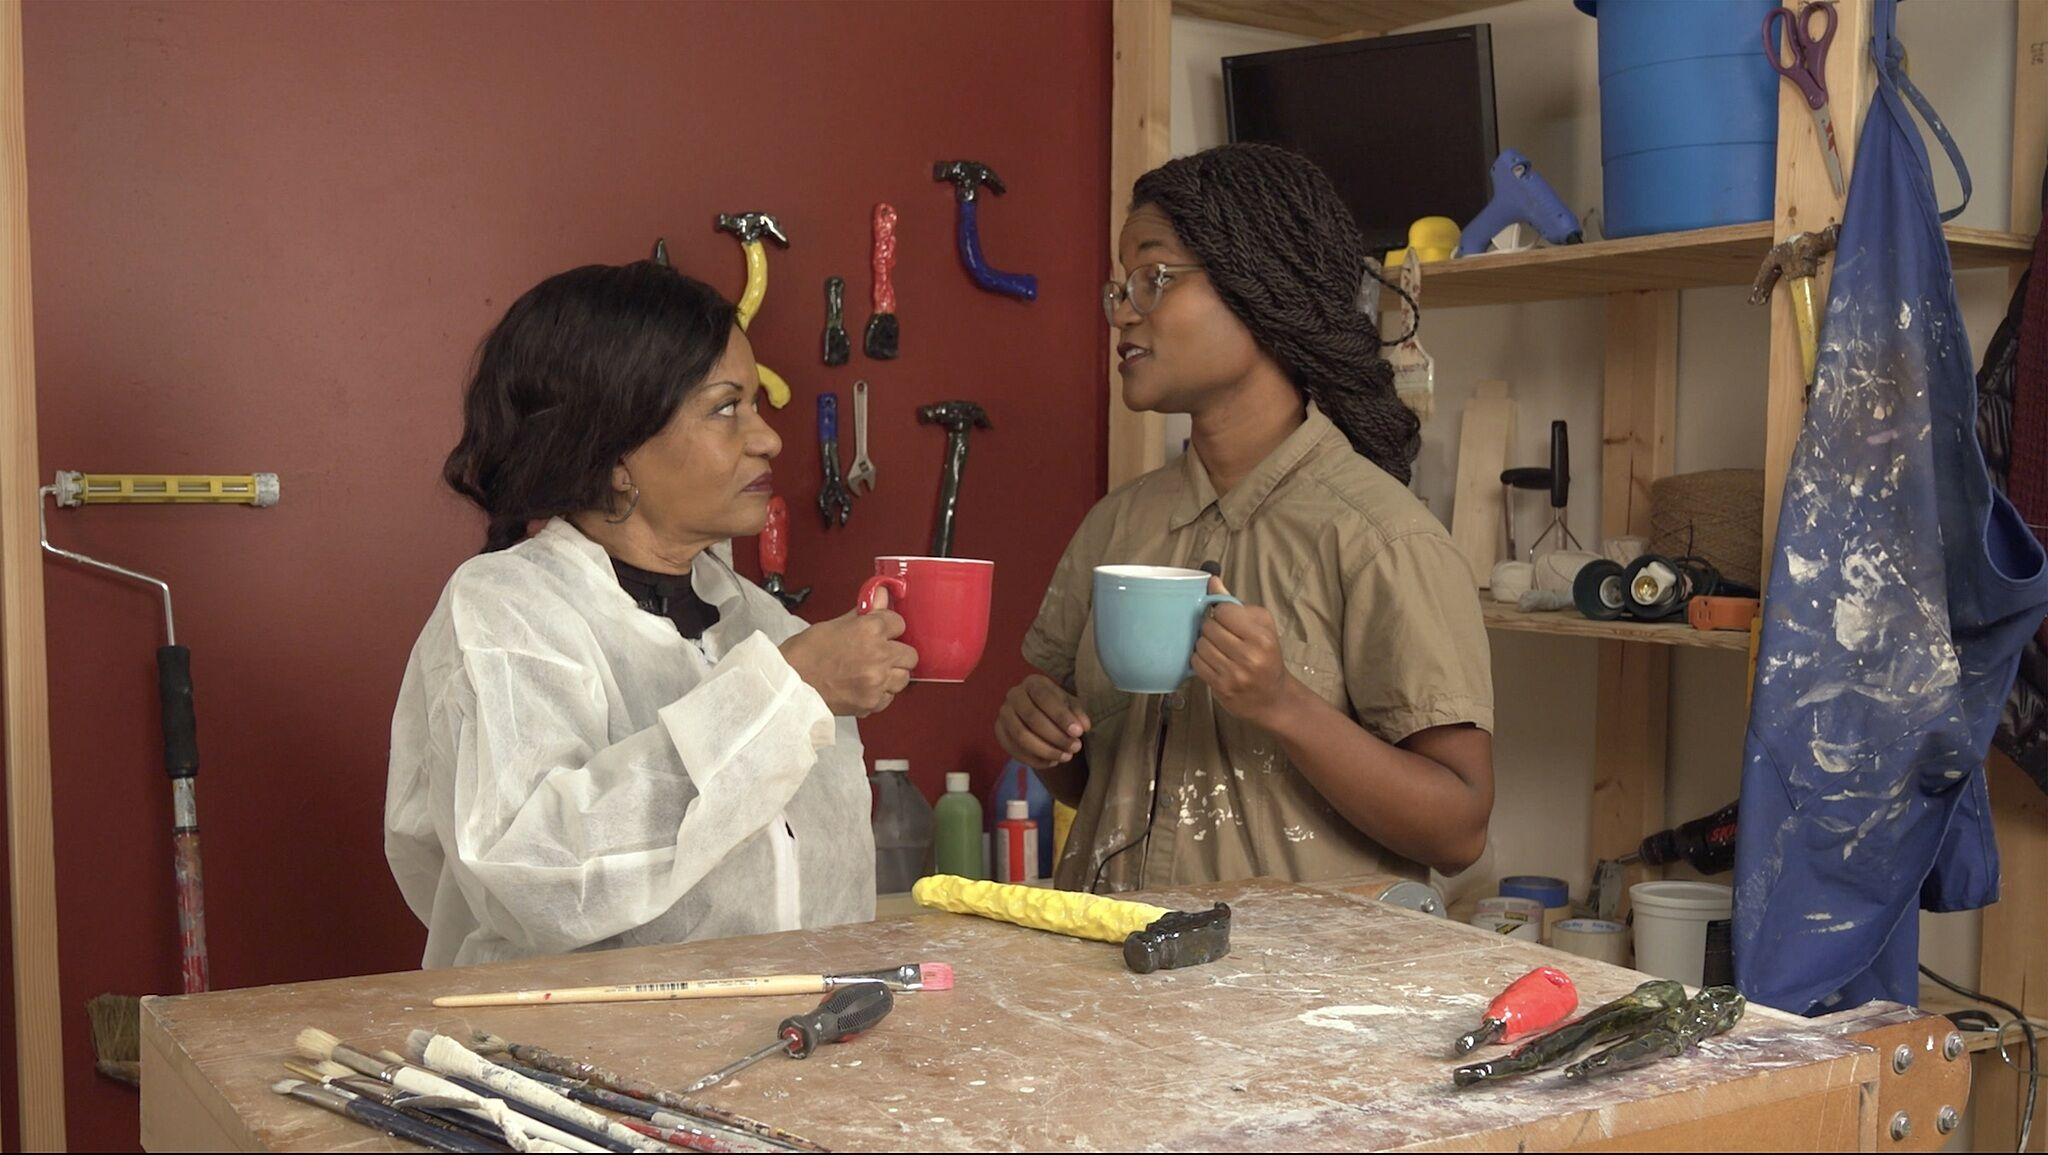 A still of two people in a restoration workspace holding coffee mugs and looking at each other.